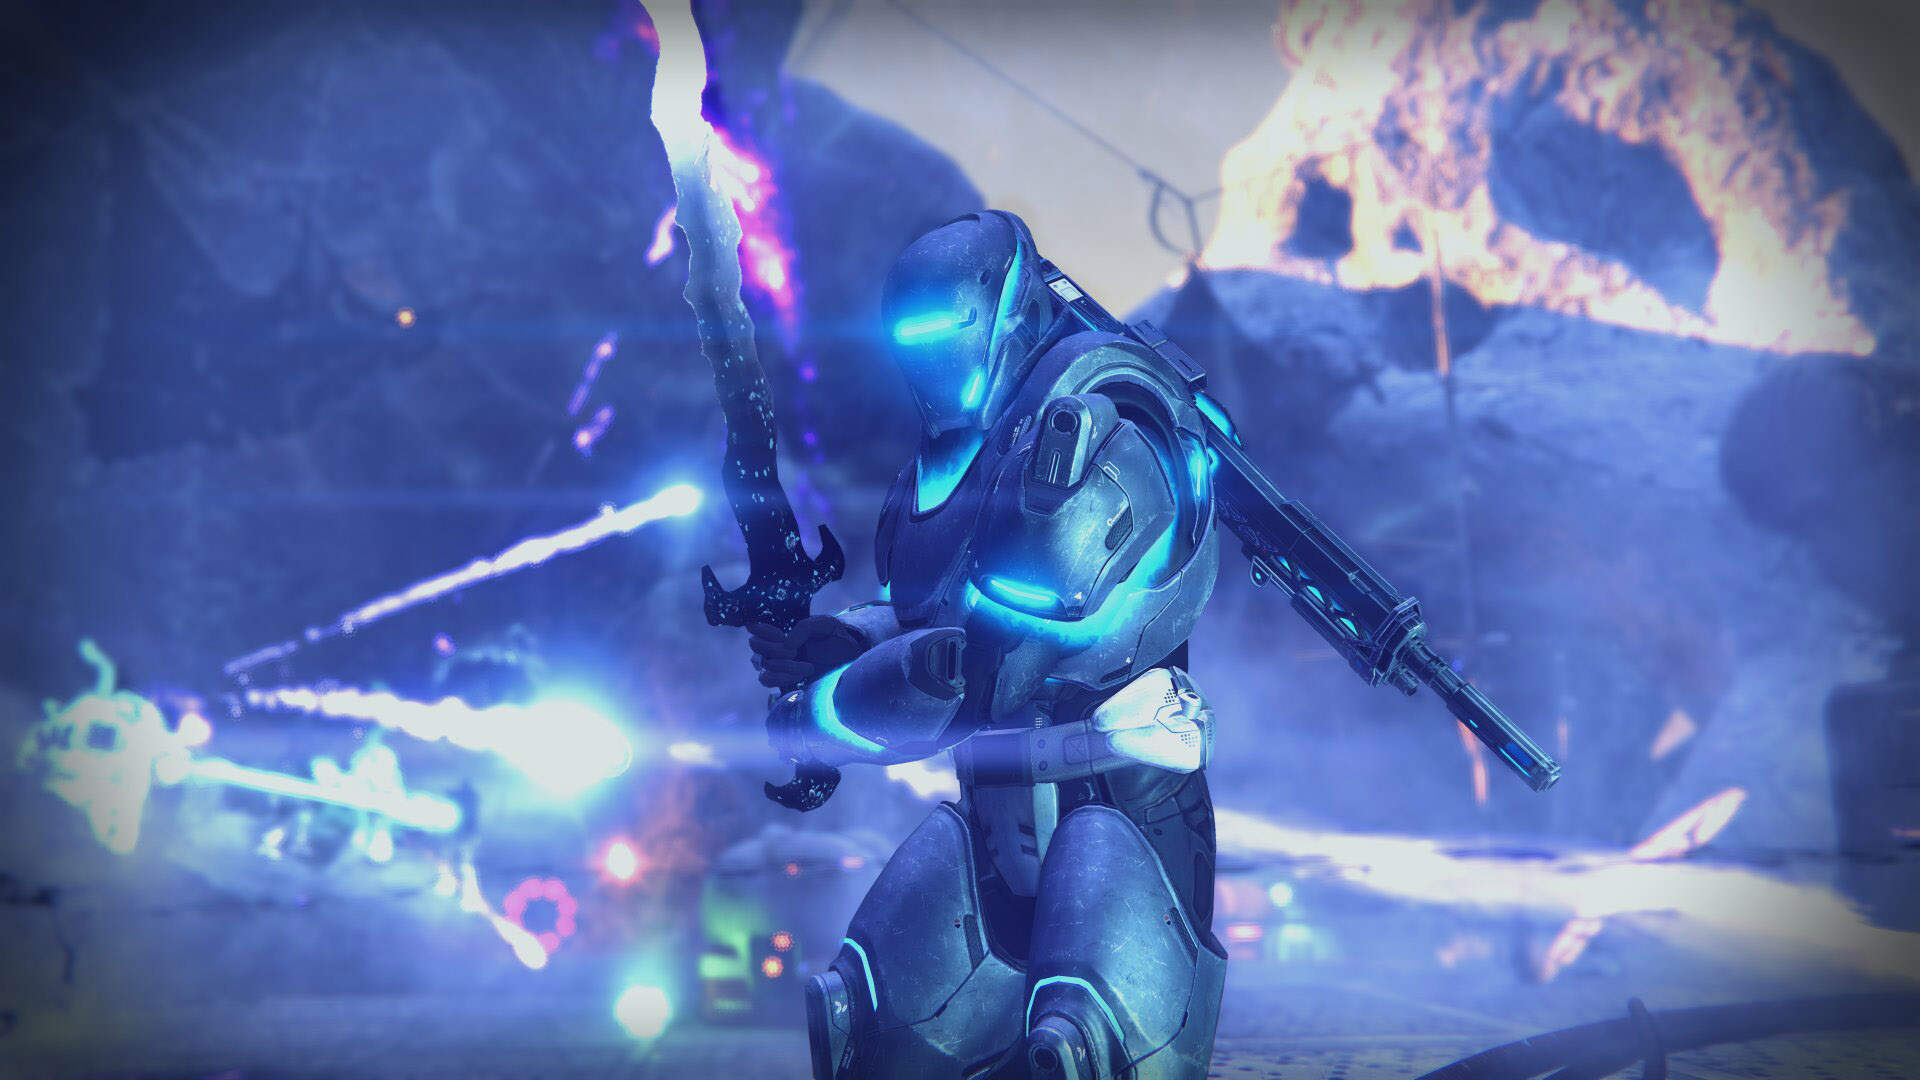 Destiny April Update - PvP Changes, Weapon Tweaks, Challenge of Elders